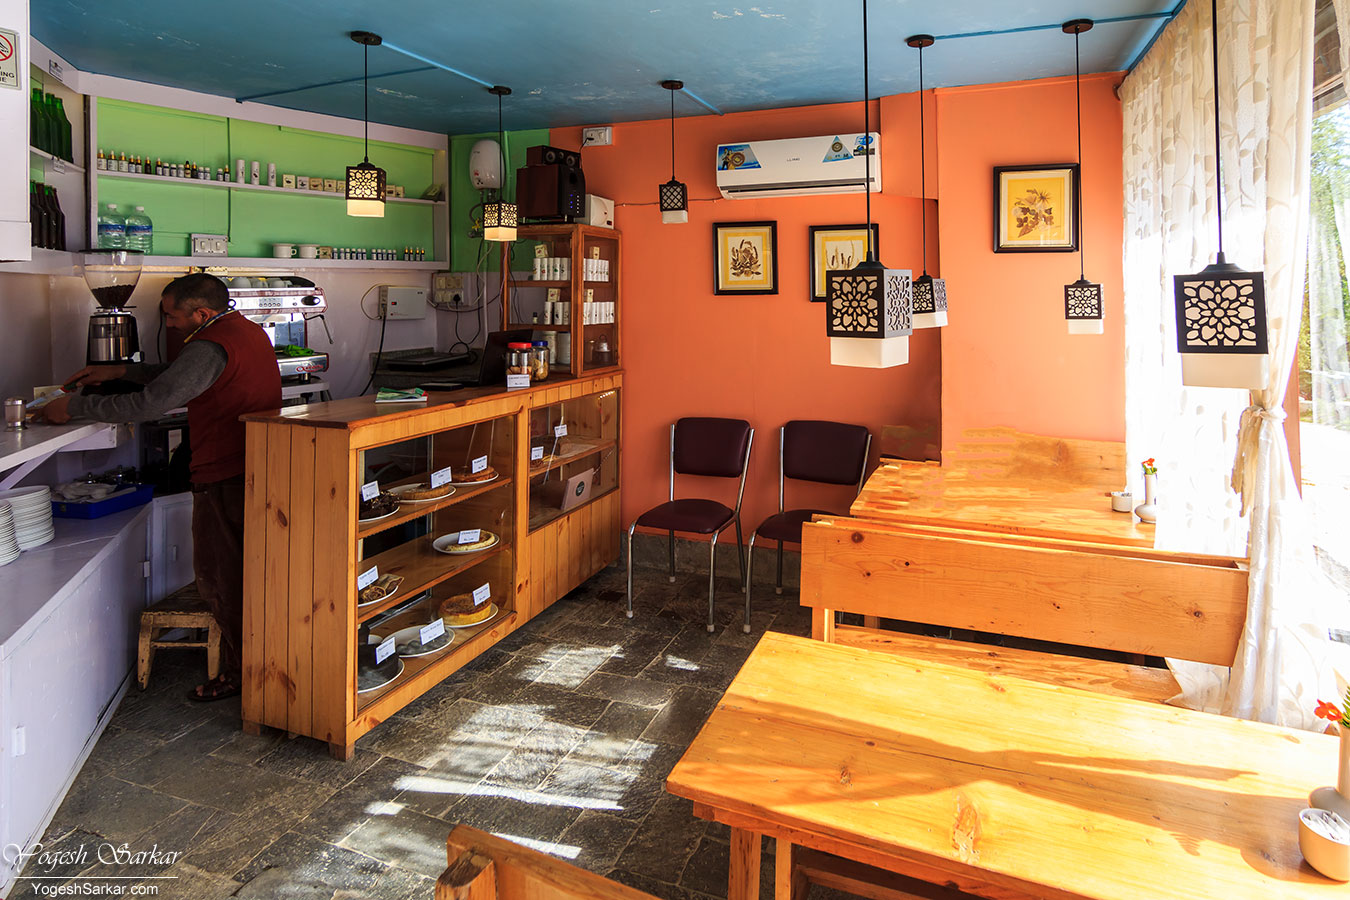 10-naggar-delight-cafe.jpg